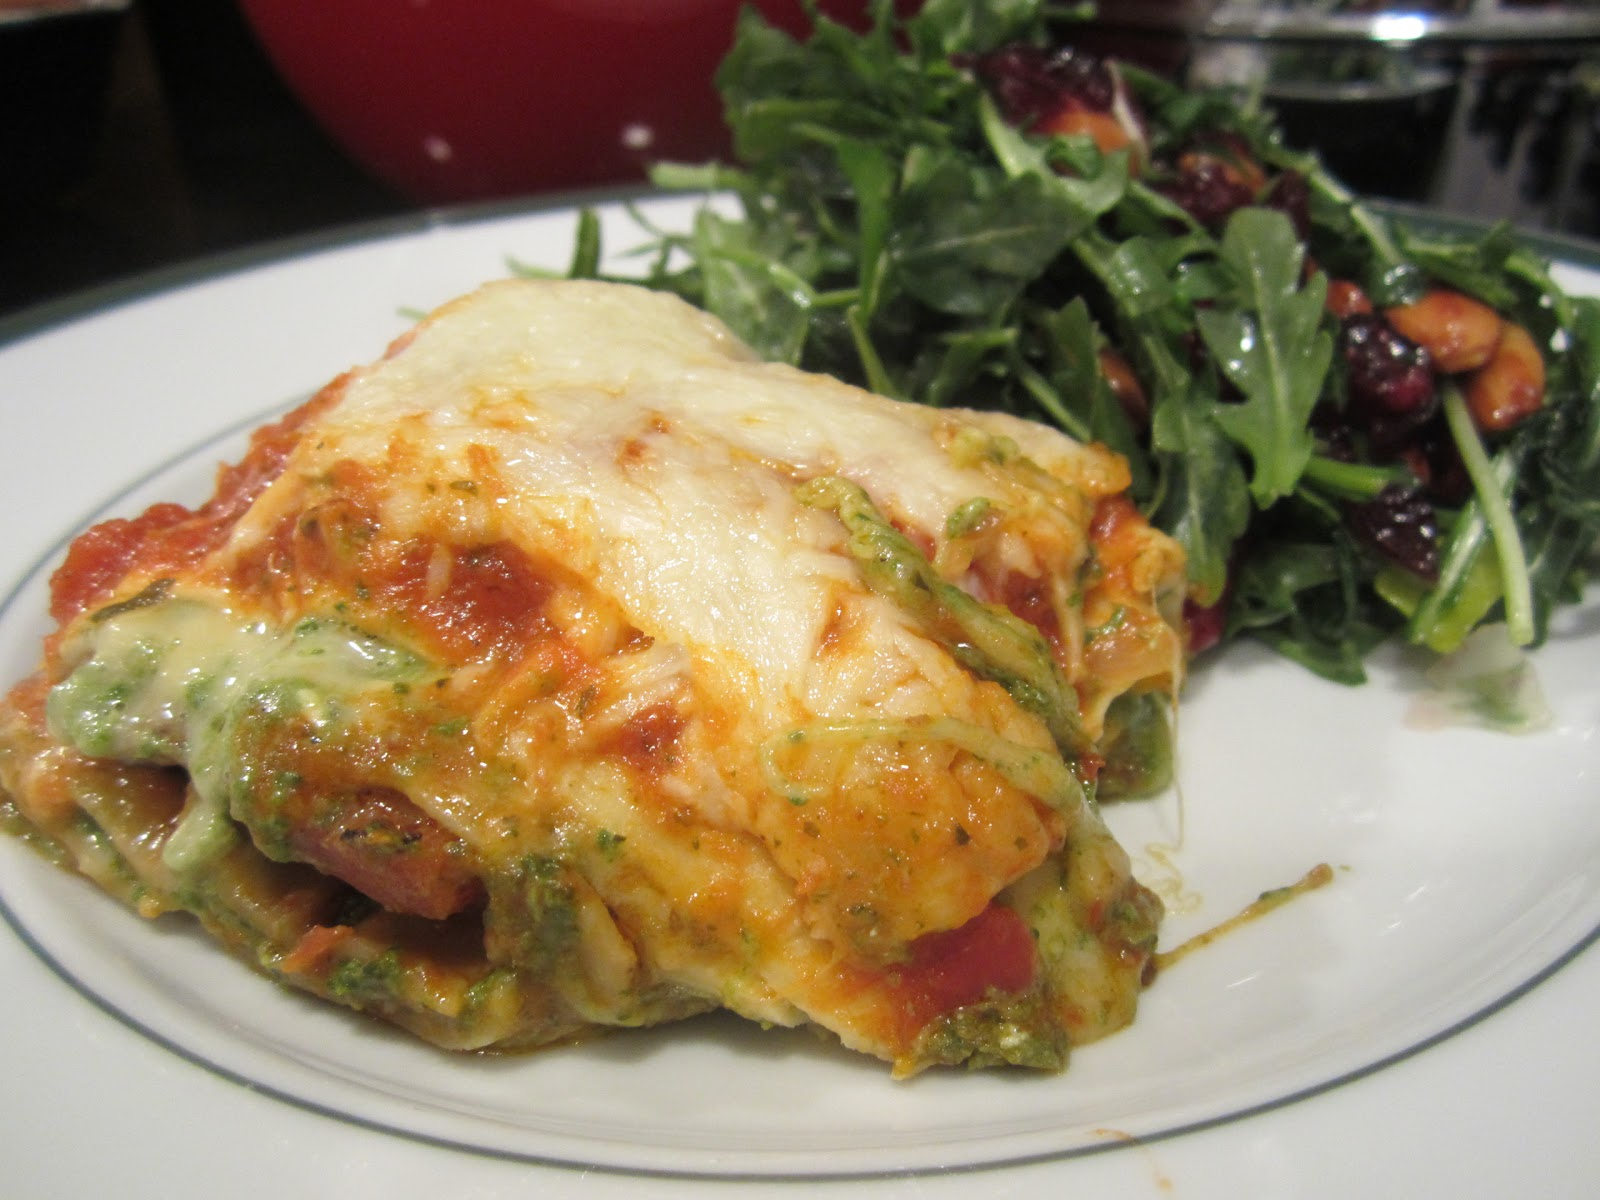 ... veggie lasagna...and the decadent spinach frittata that came after it